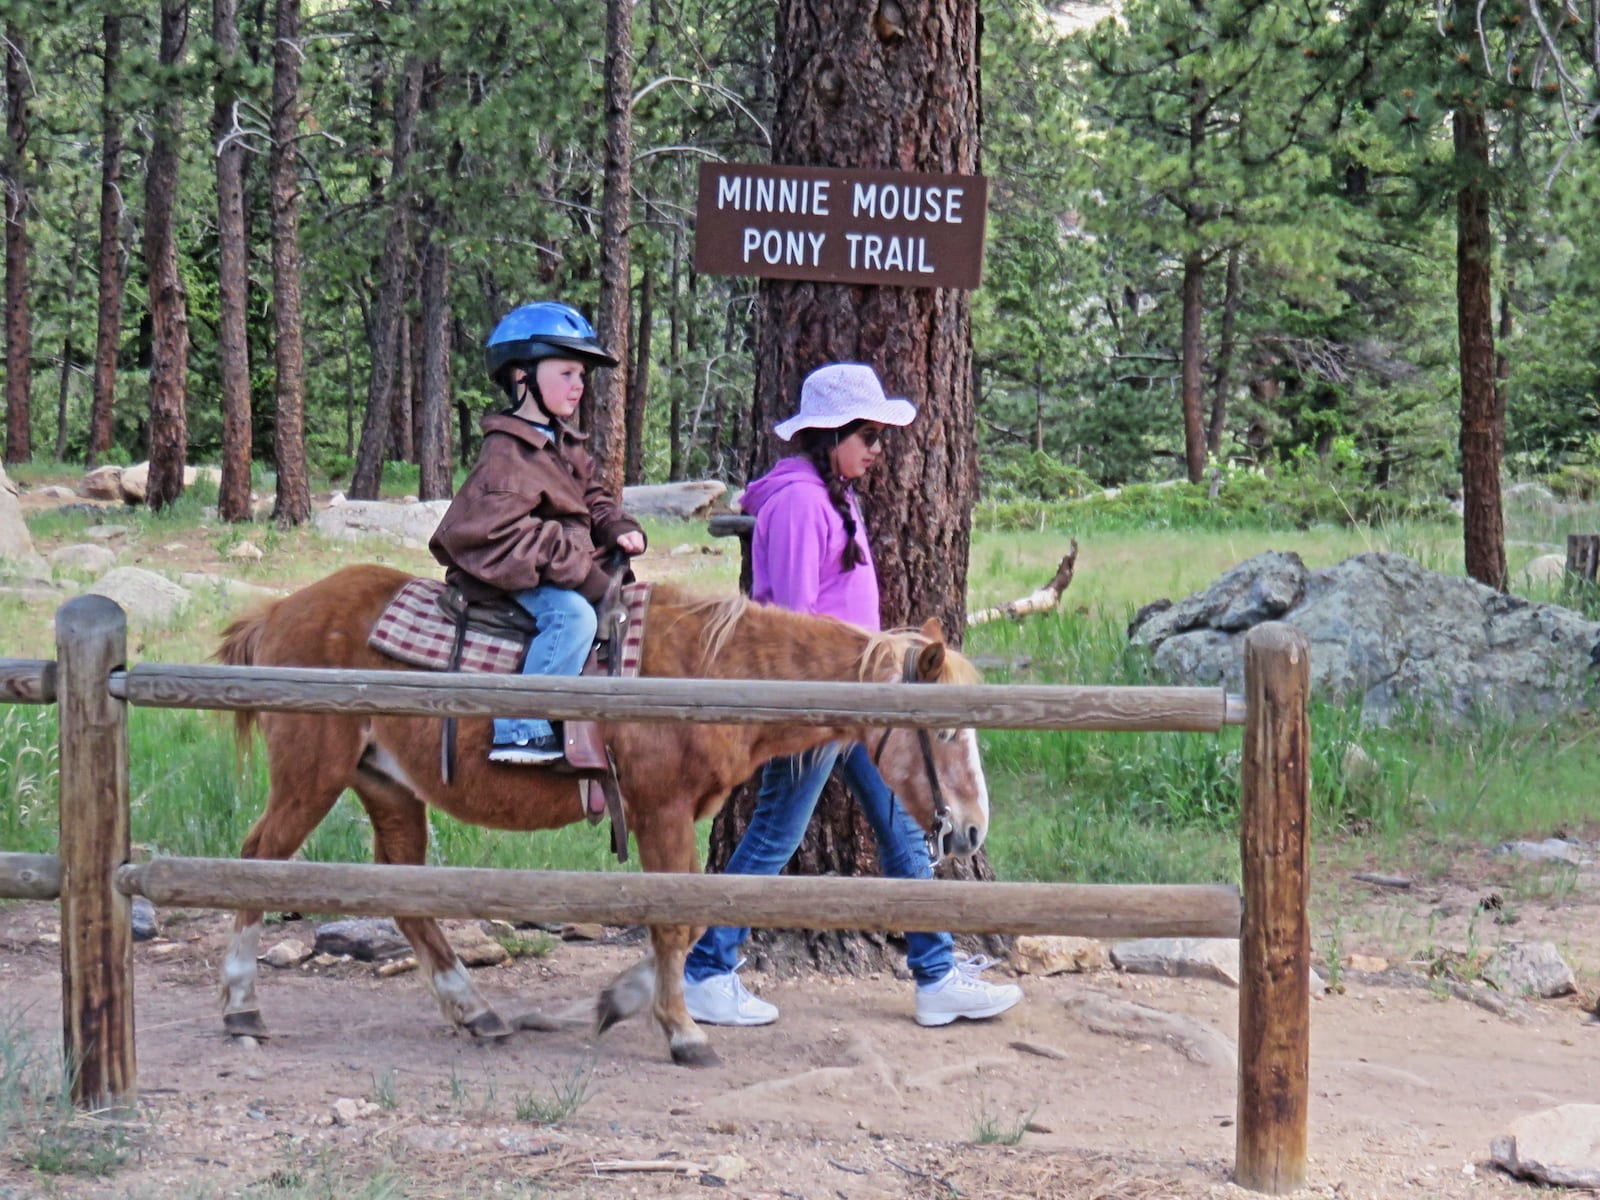 Riding on horseback at YMCA of the Rockies, CO